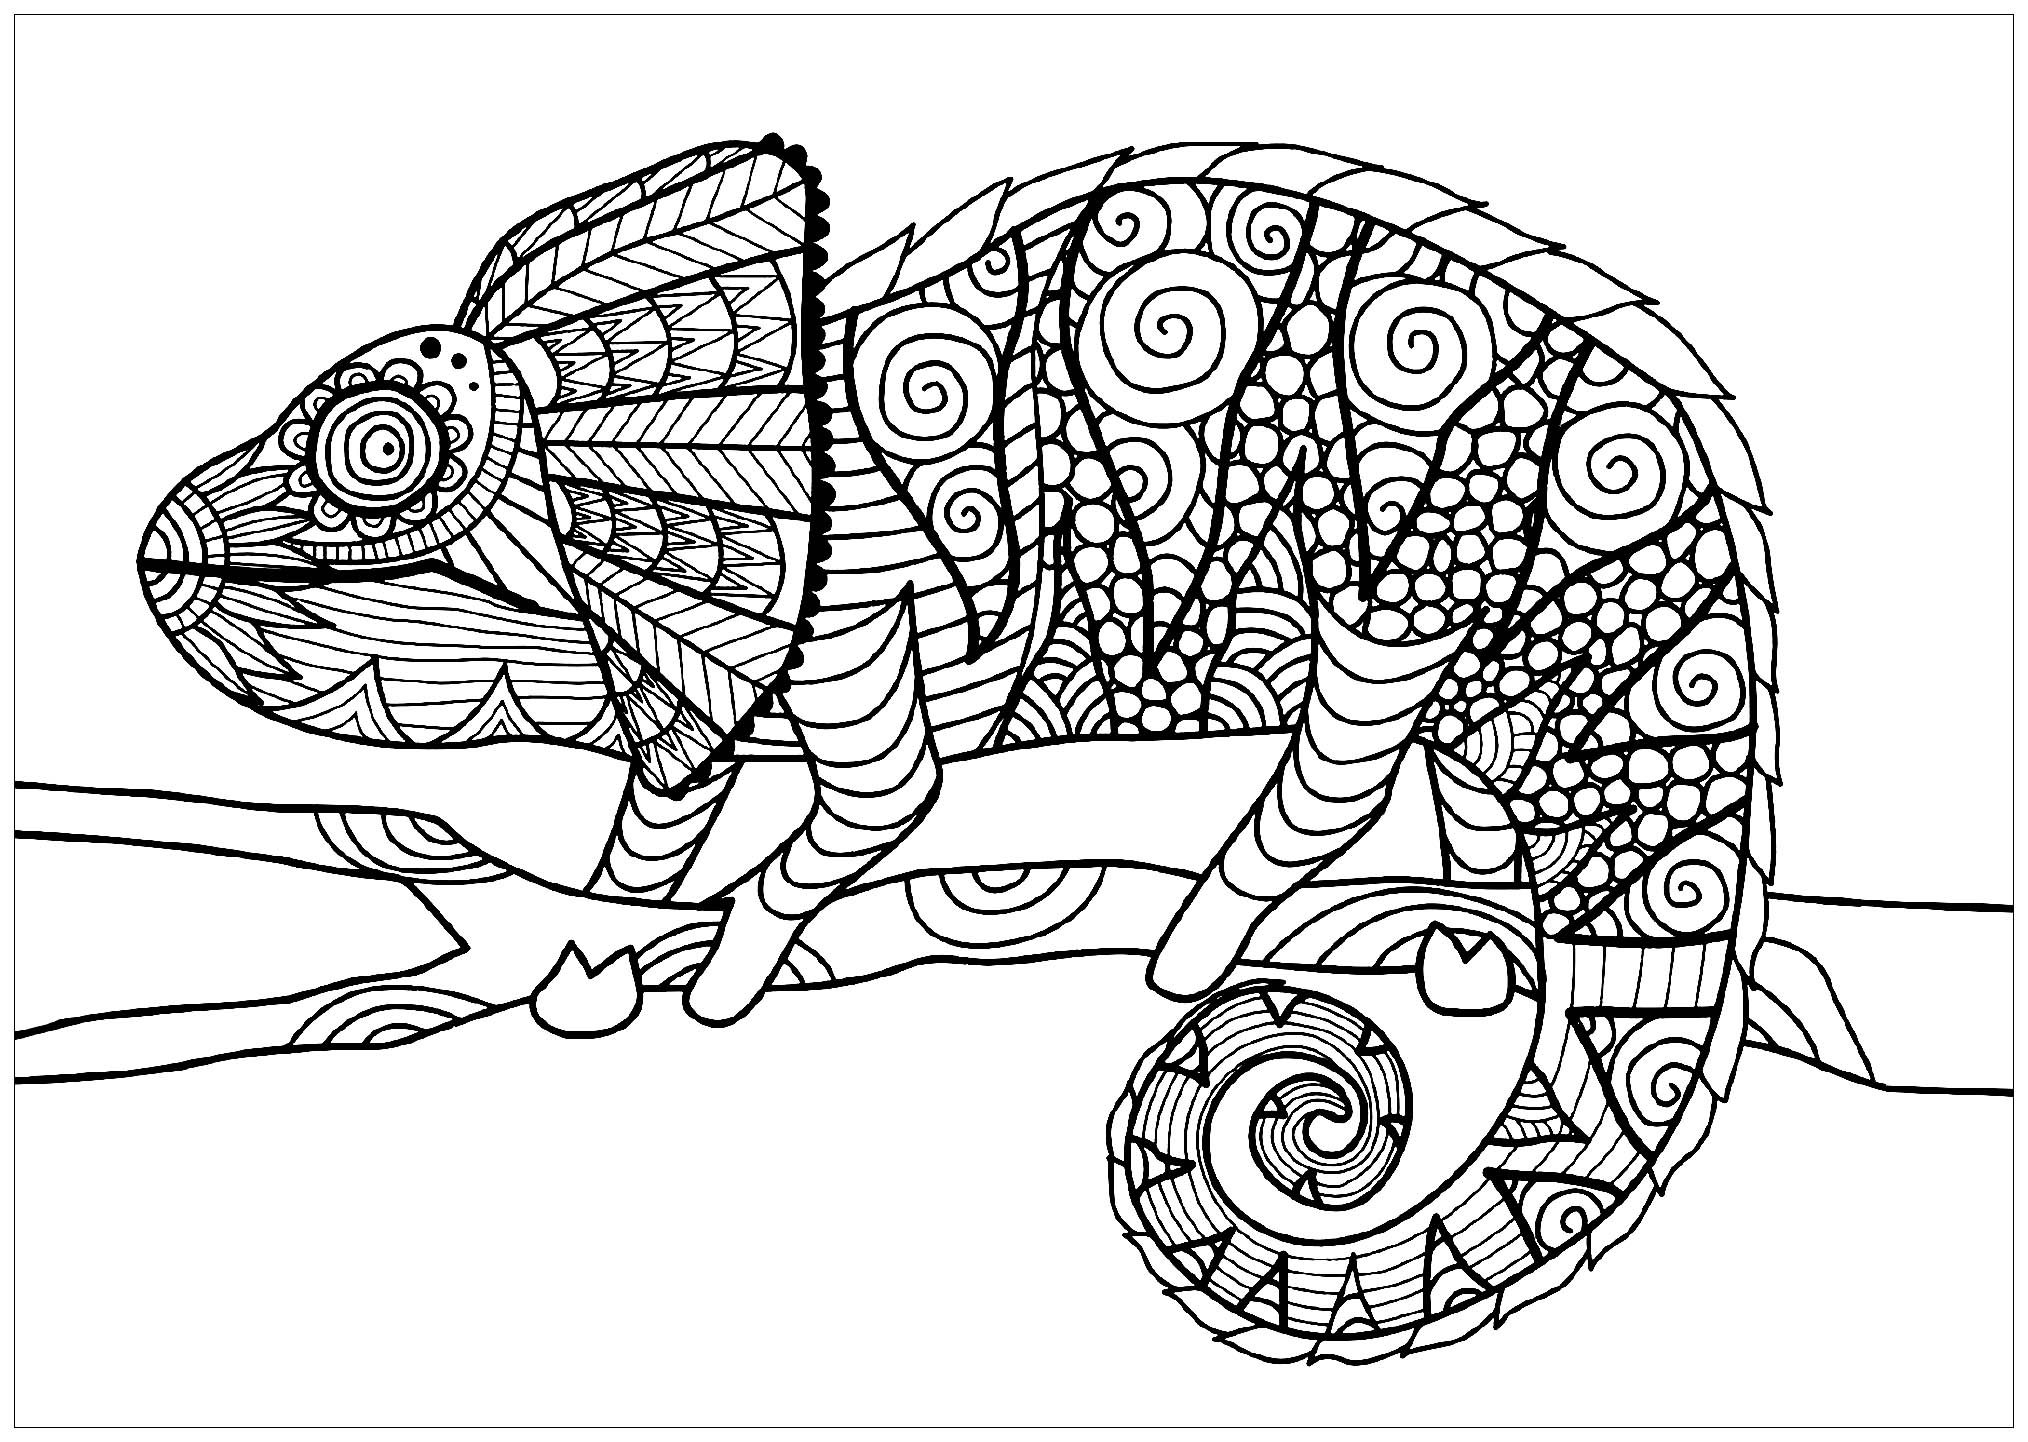 chameleon coloring pages free | Chameleon on branch - Chameleons & lizards Adult Coloring ...